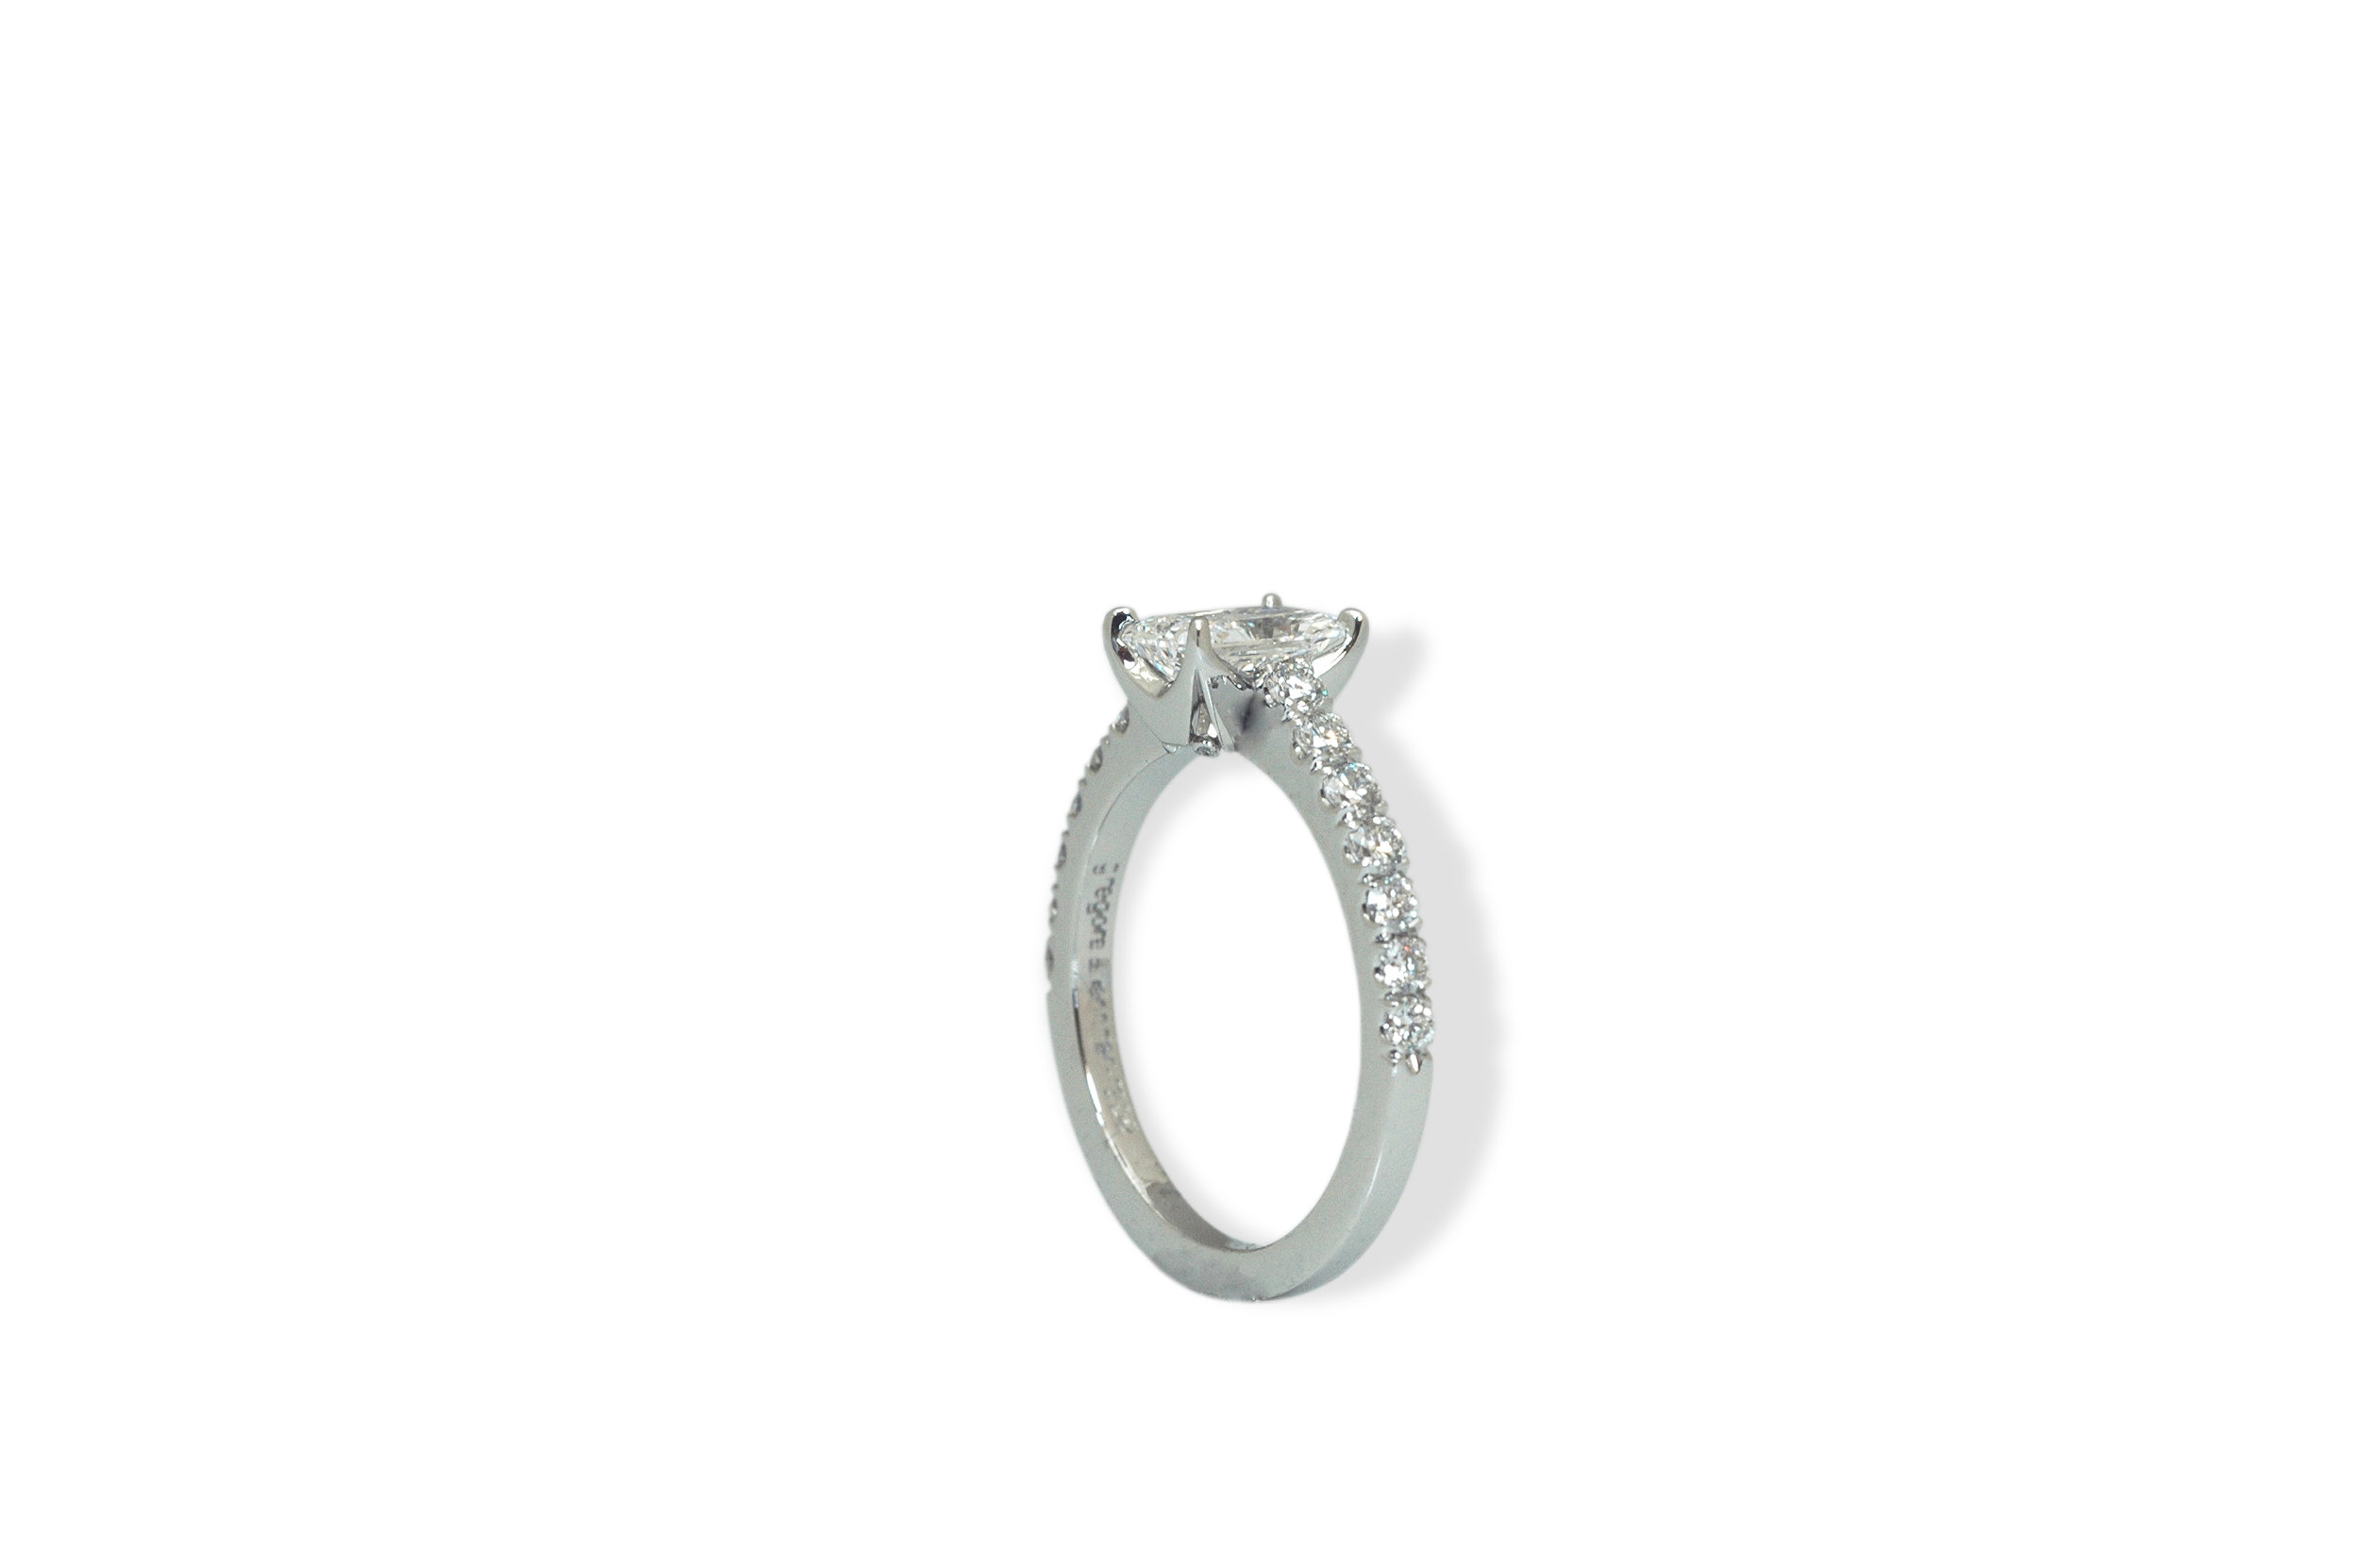 Engagement ring in platinum and diamonds with accent diamonds at the base of the center setting.